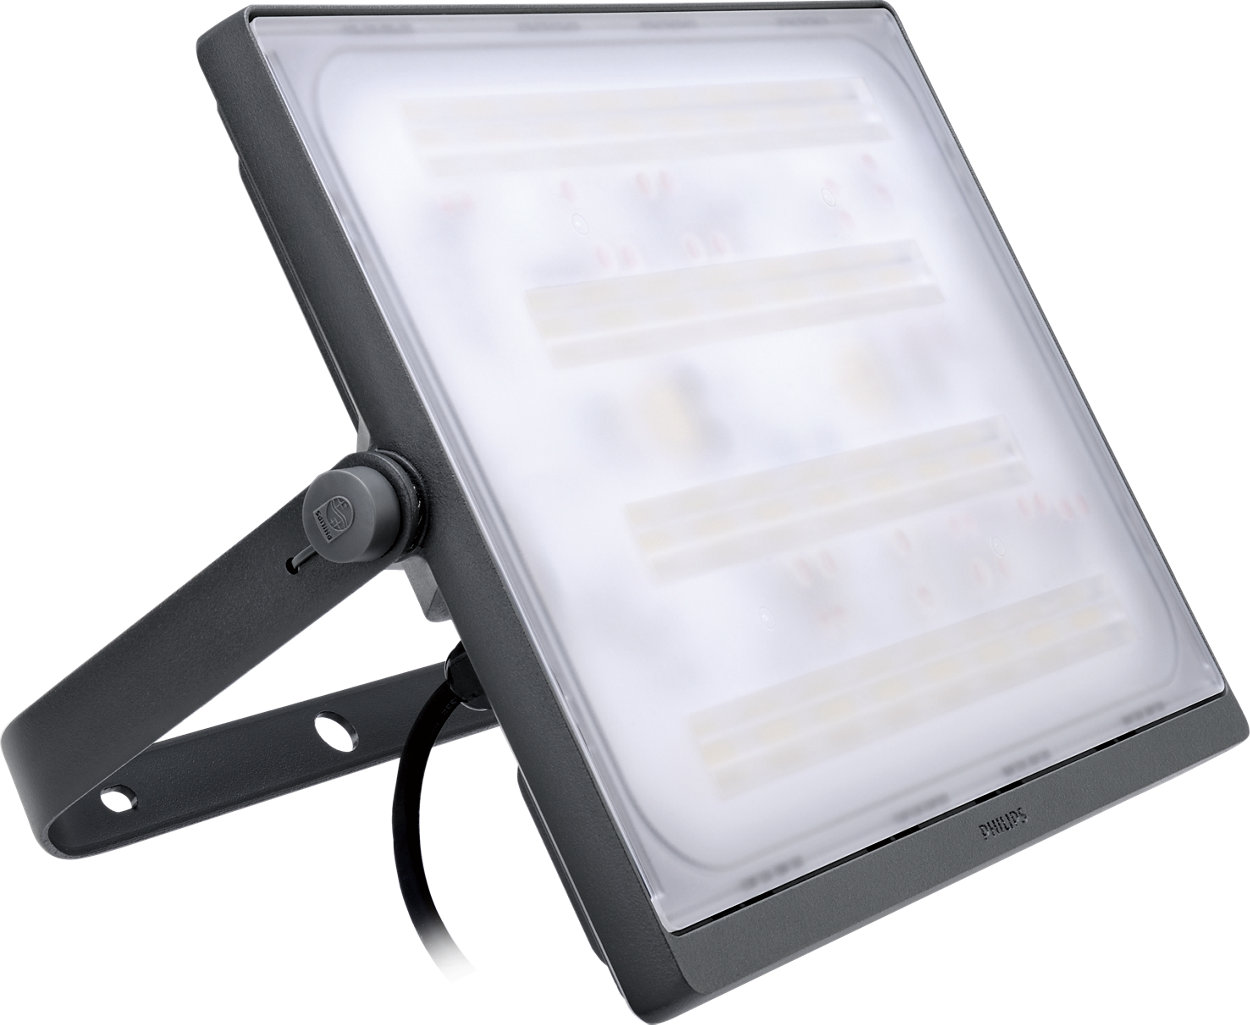 Bvp176 Led190 Cw 200w Wb Grey L1000 Smartbright Led Floodlight Wiring Diagram Reliable And High Performance